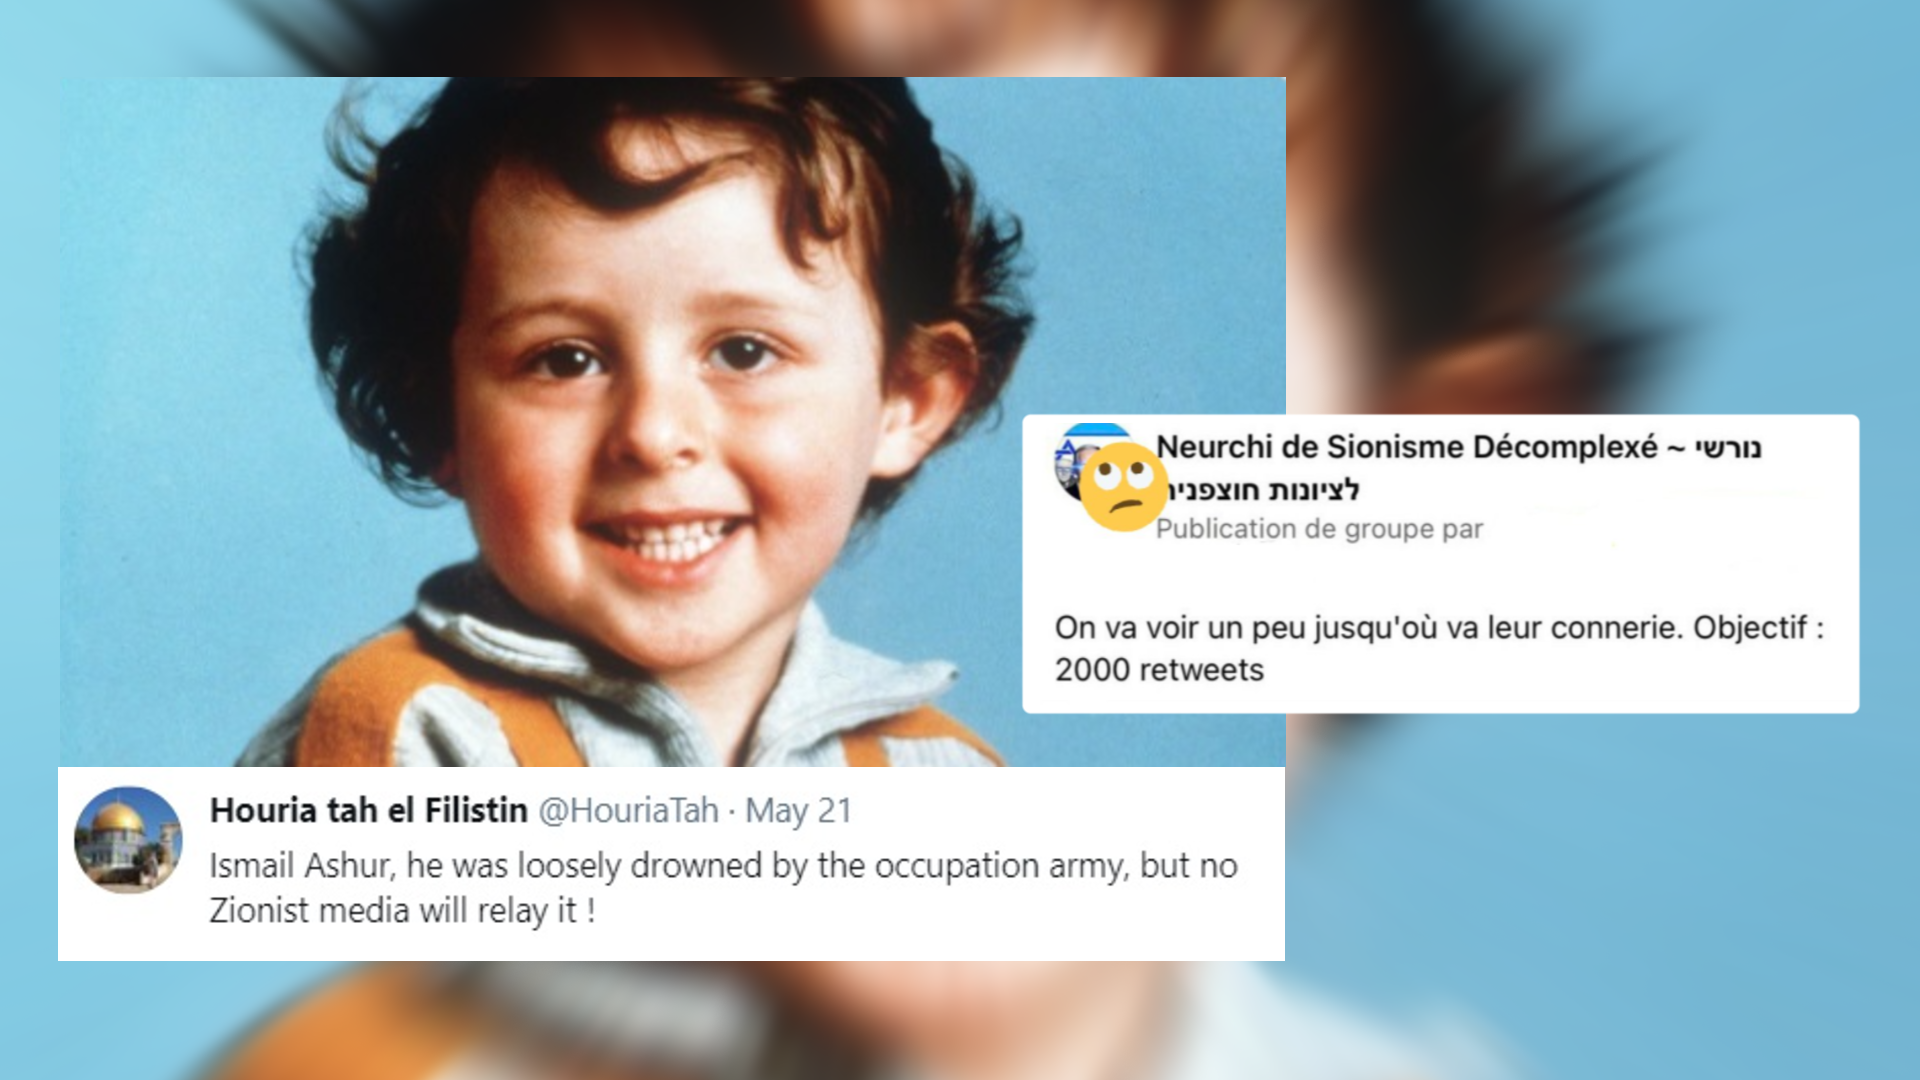 Lots of people shared this photo of a little boy, claiming that he had been killed in Gaza. It turns out, however, that this is actually the photo of a little boy named Grégory, who died in France under mysterious circumstances in the 1980s. His photo was picked up and used by a pro-Israeli Facebook group in a complicated ploy.